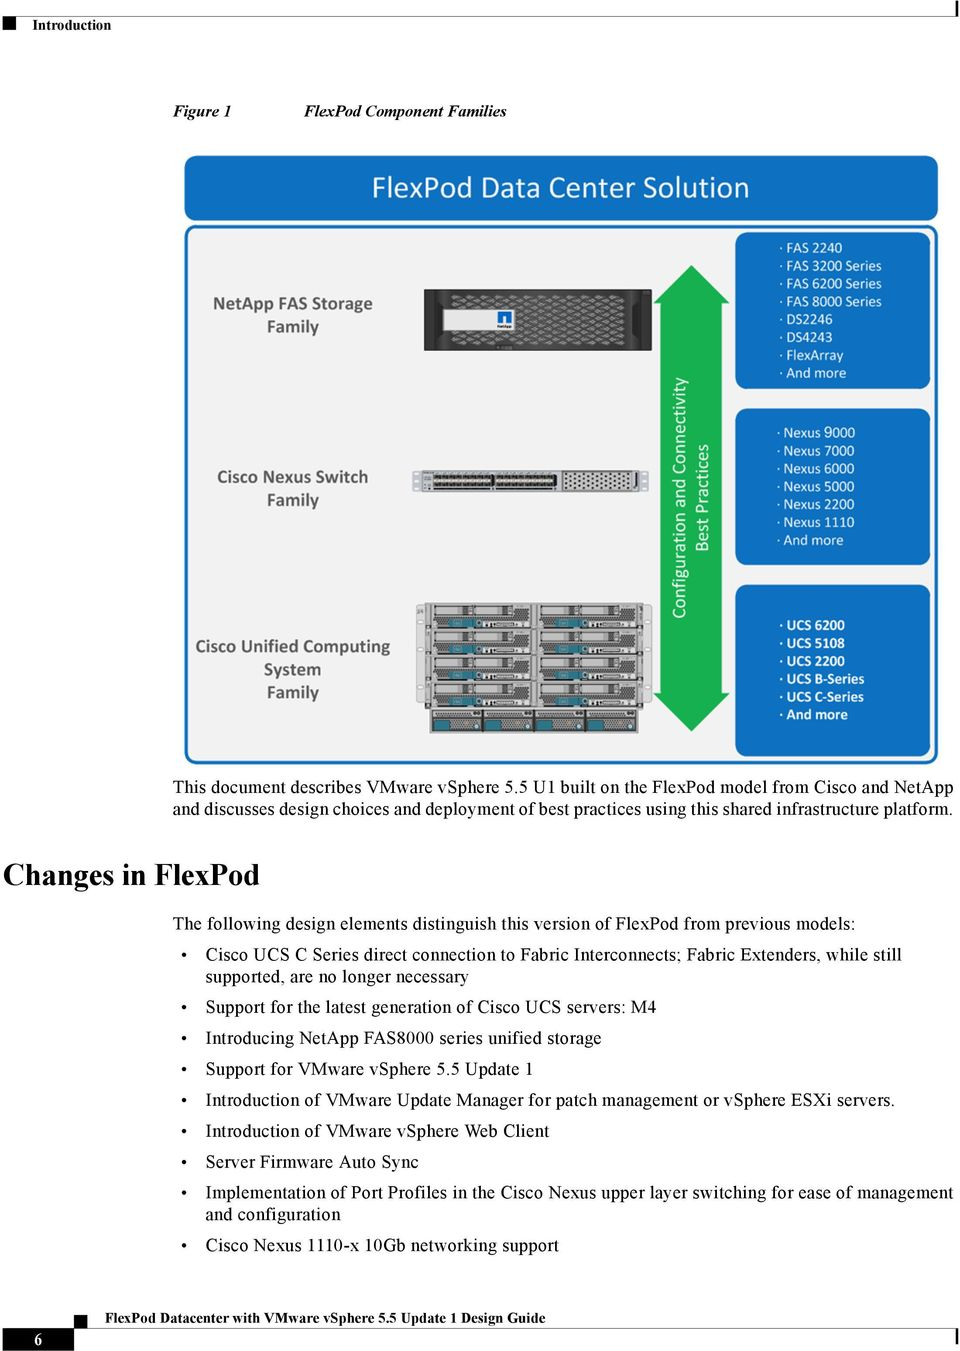 Changes in FlexPod The following design elements distinguish this version of FlexPod from previous models: Cisco UCS C Series direct connection to Fabric Interconnects; Fabric Extenders, while still